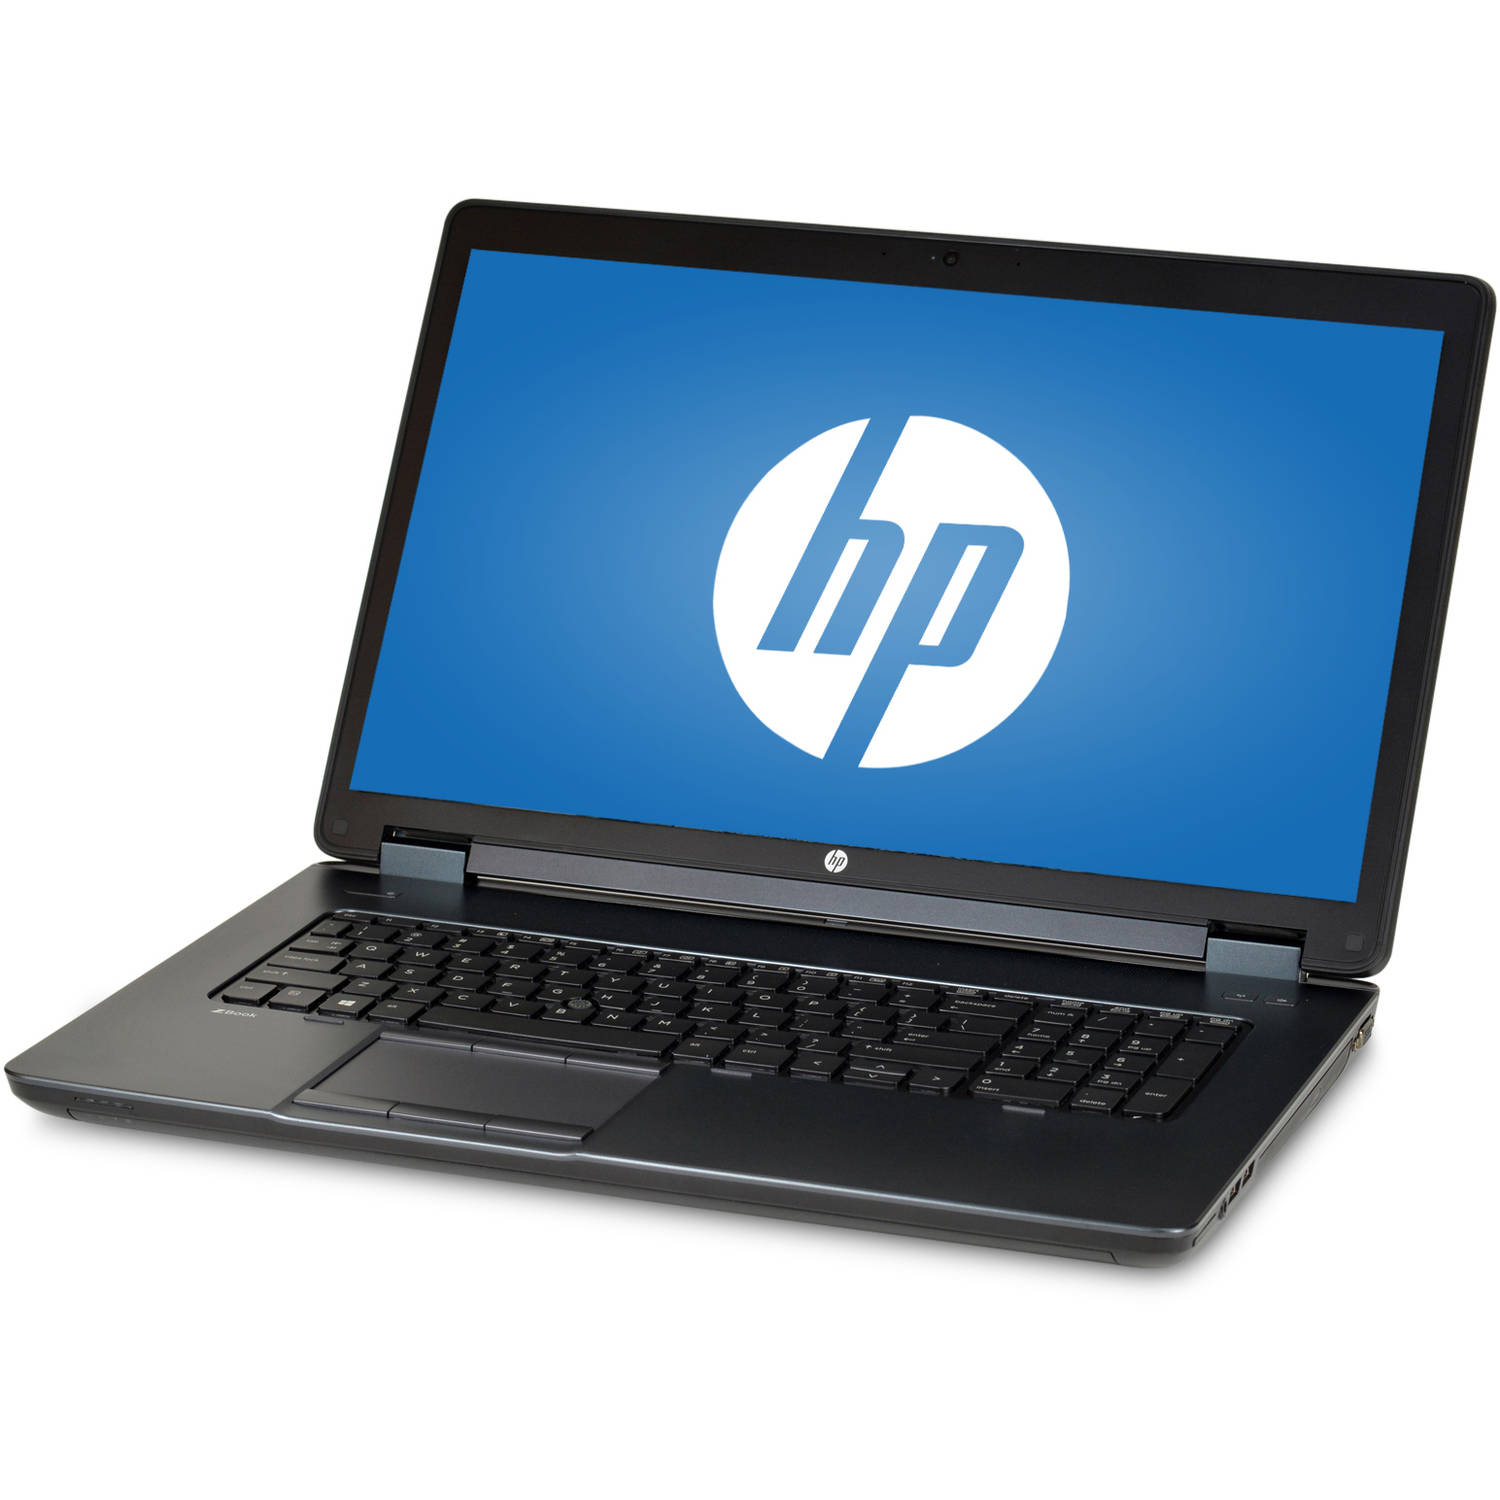 "Refurbished HP Zbook 17 17.3"" Laptop, Windows 10 Pro, Intel Core i5-4300M Processor, 8GB RAM, 256GB Solid State Drive"